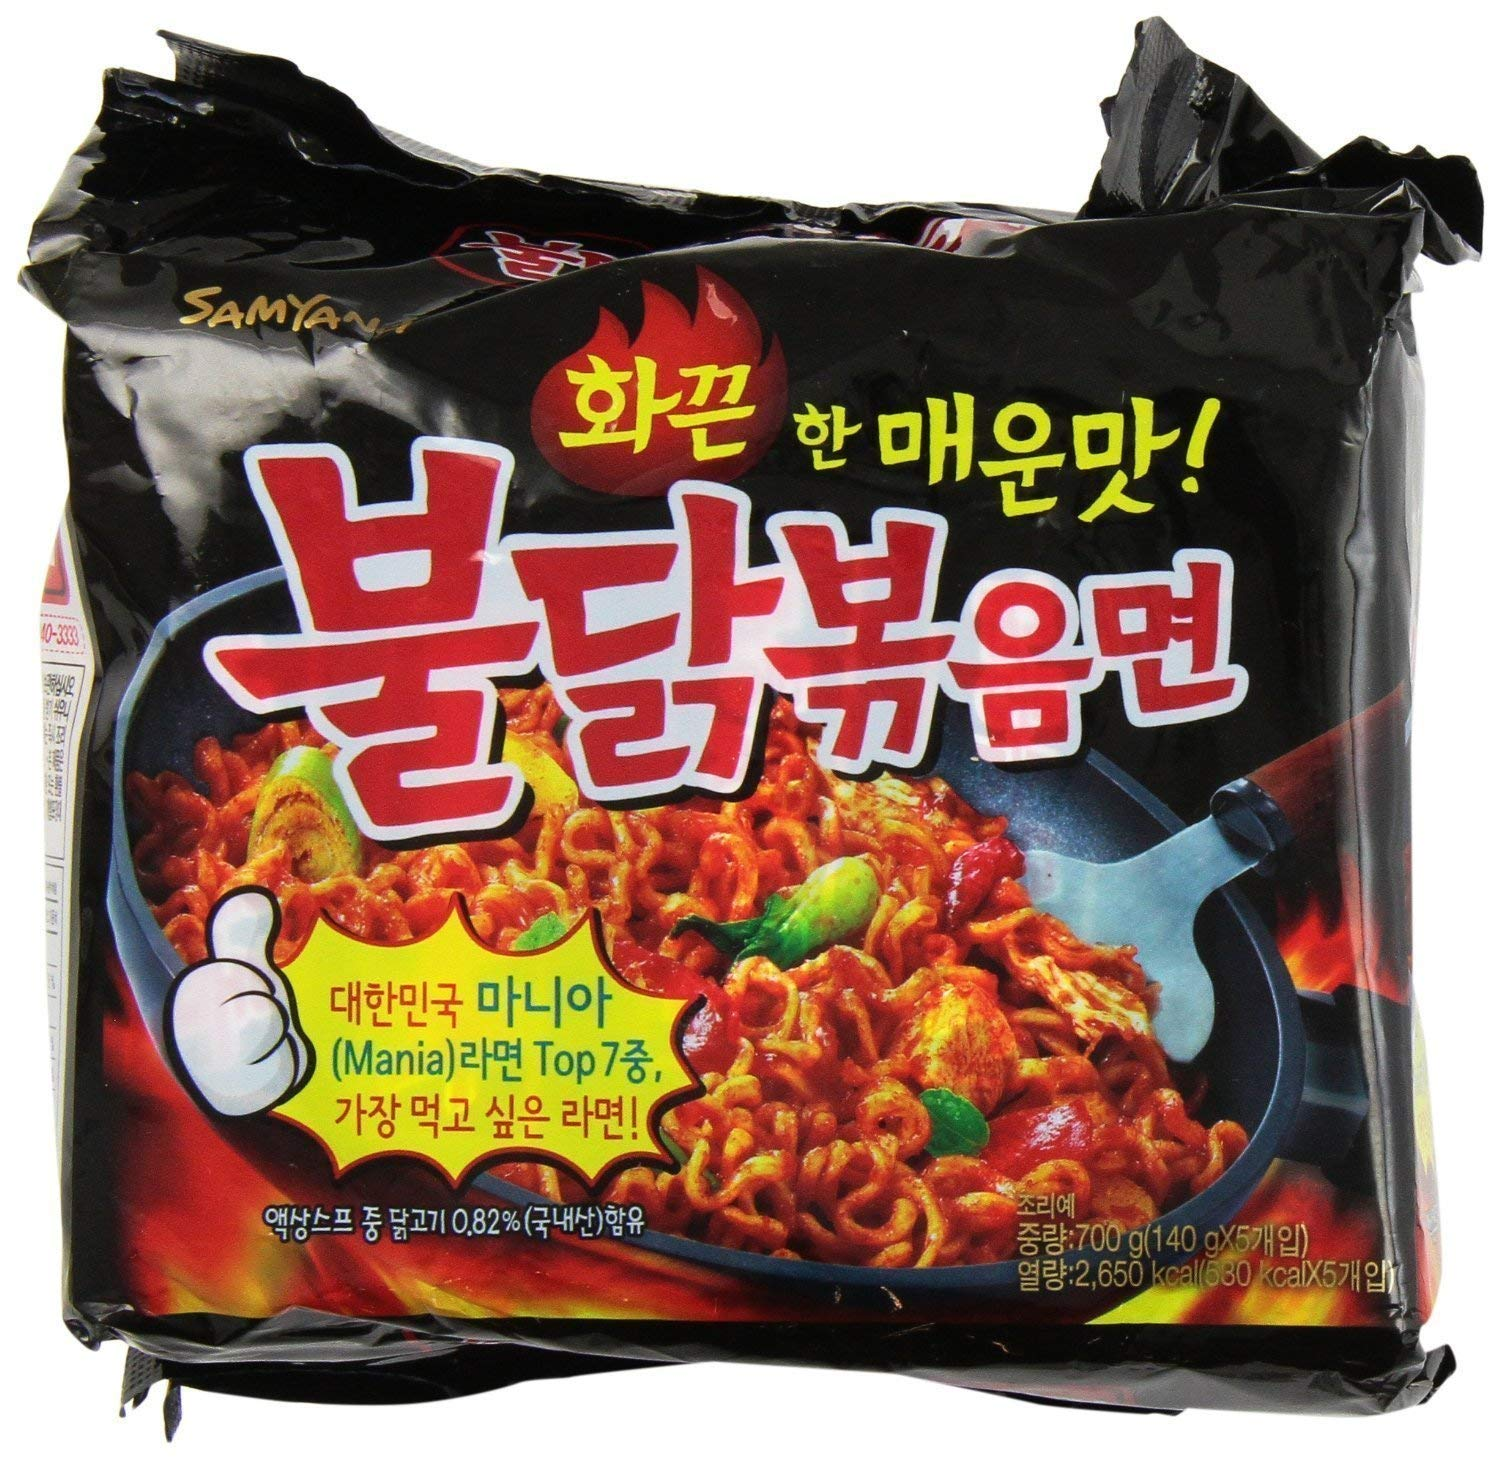 Samyang Instant Ramen Noodles, Halal Certified, Spicy Stir-Fried Chicken Flavor (Pack of 10)